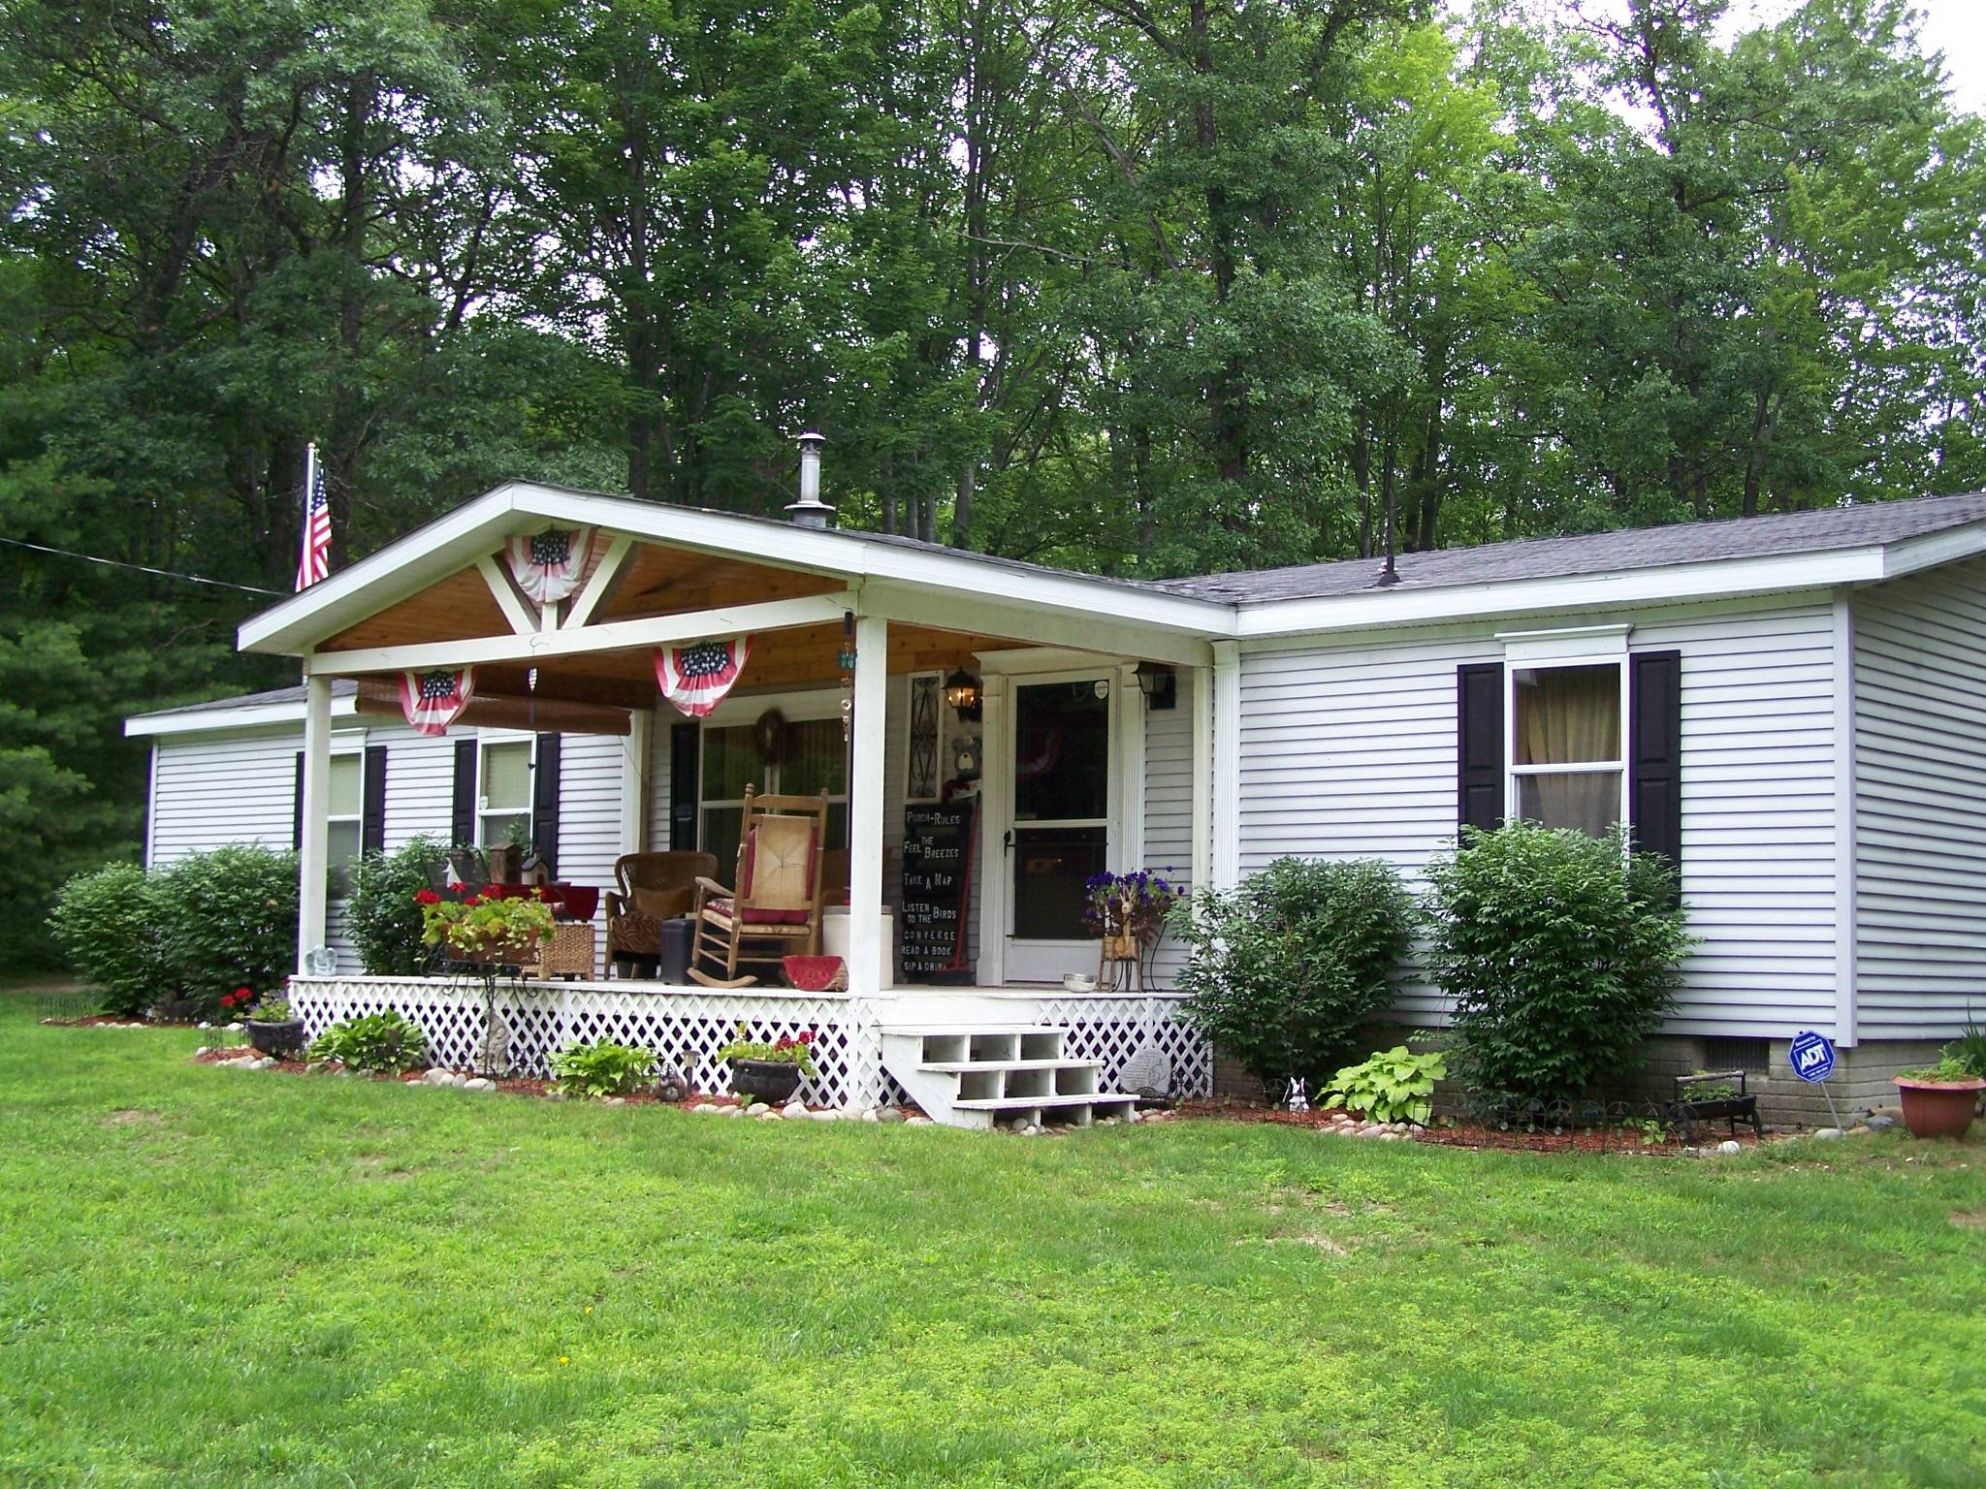 Beauty Front Porch Design Mobile Homes - House Plans | #8 - front porch ideas mobile homes